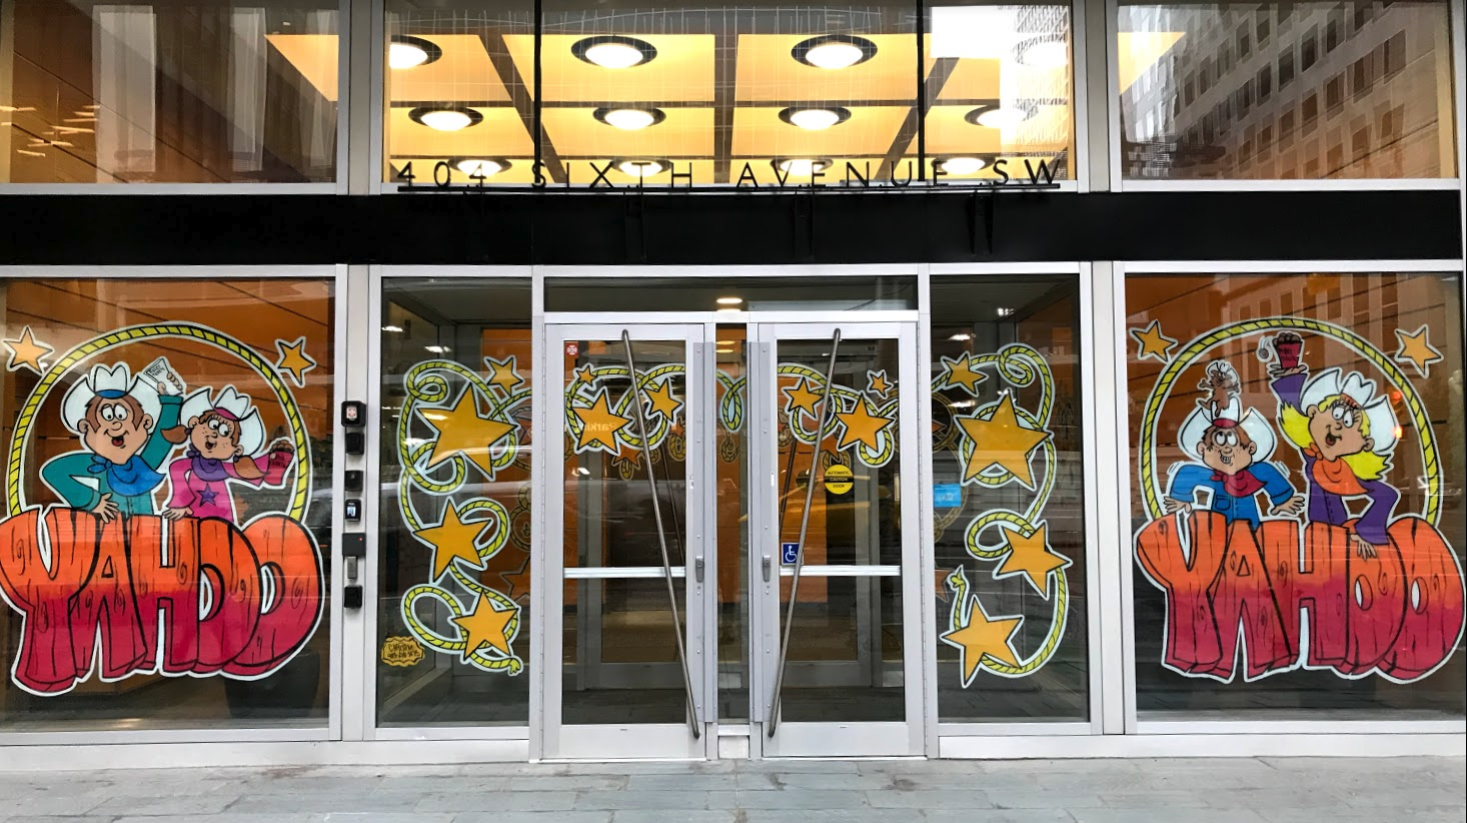 Only a few of the 100+ Calgary downtown office buildings have their entrances decorated to celebrate Stampede this year. It use to part of the Stampede tradition to create fun (and yes tacky for some) windows.